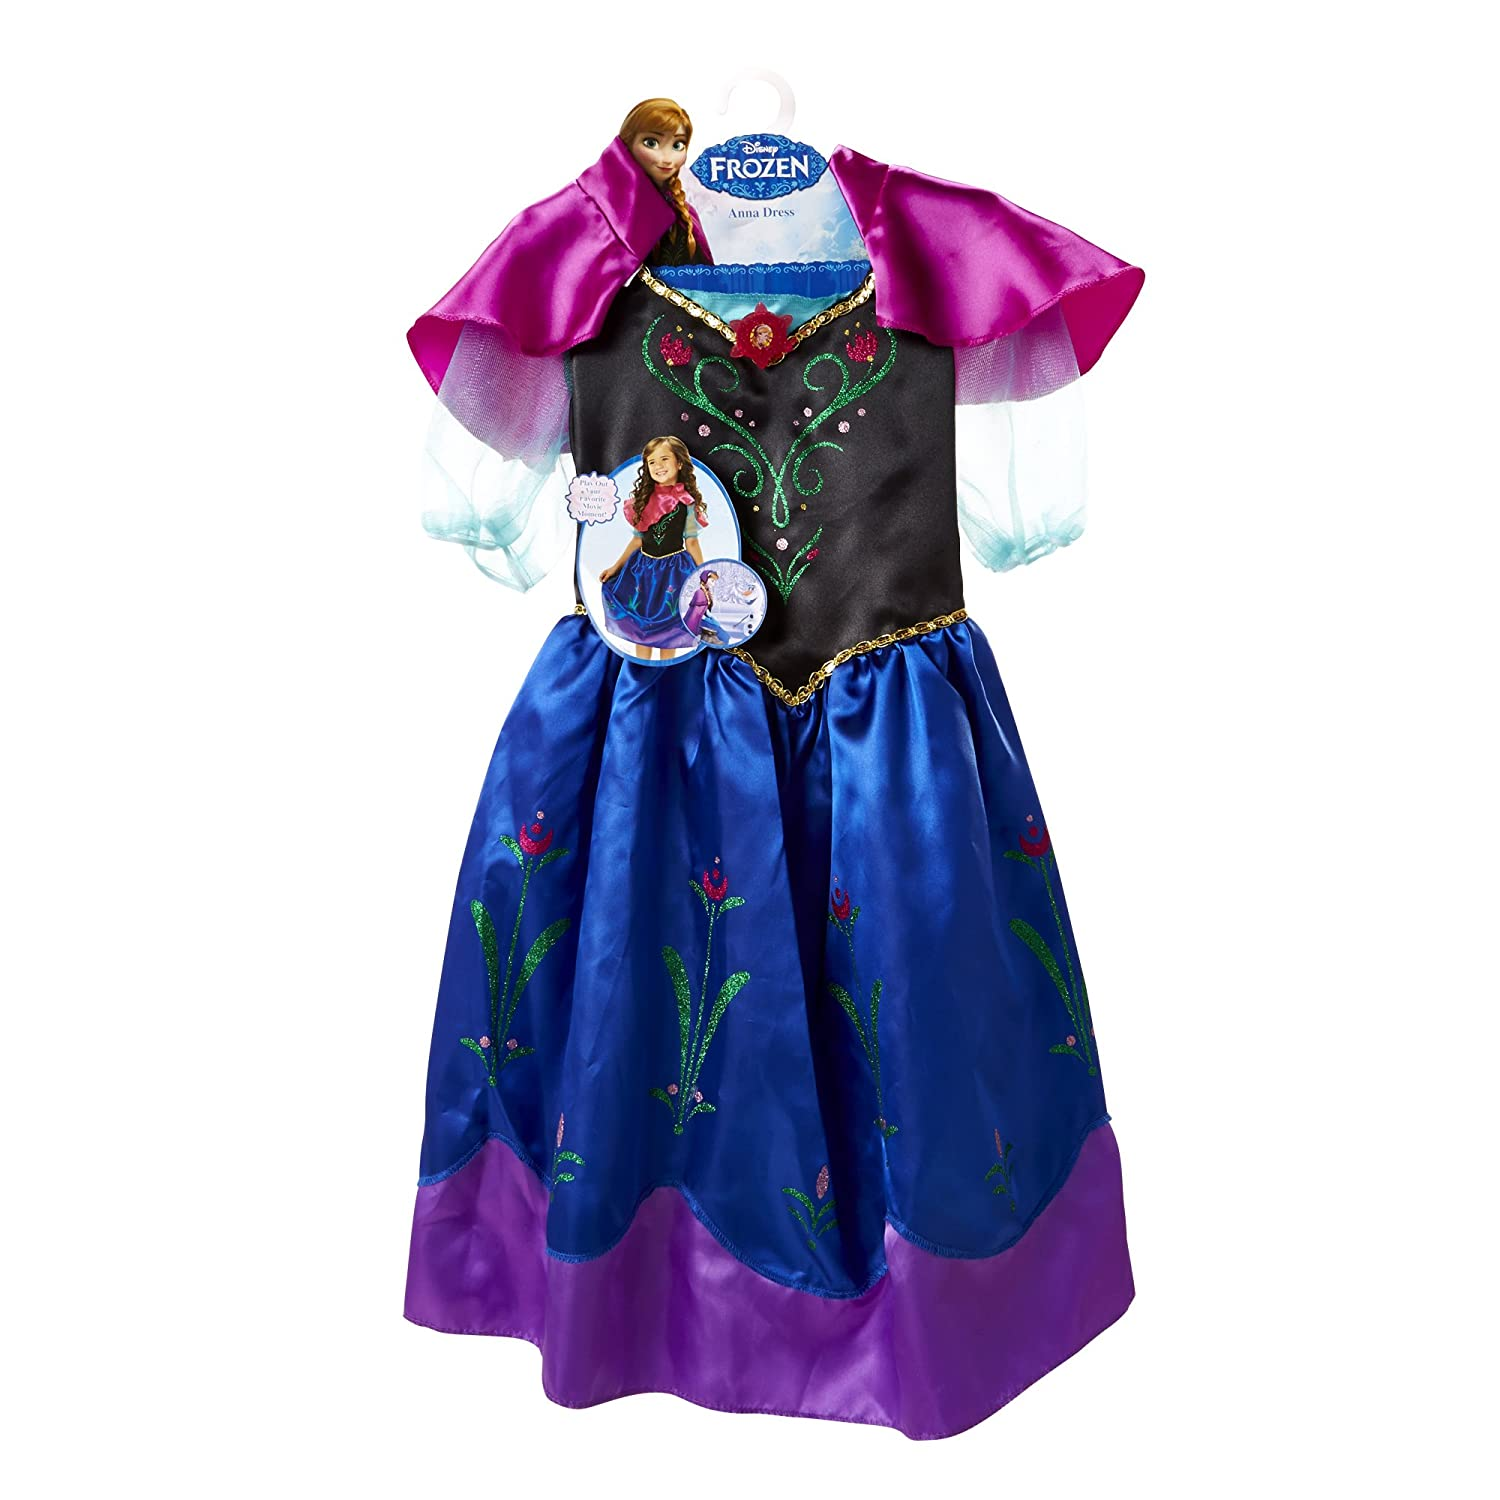 sc 1 st  Amazon.com & Amazon.com: Disney Frozen Anna New Adventure Dress 4-6x: Toys u0026 Games